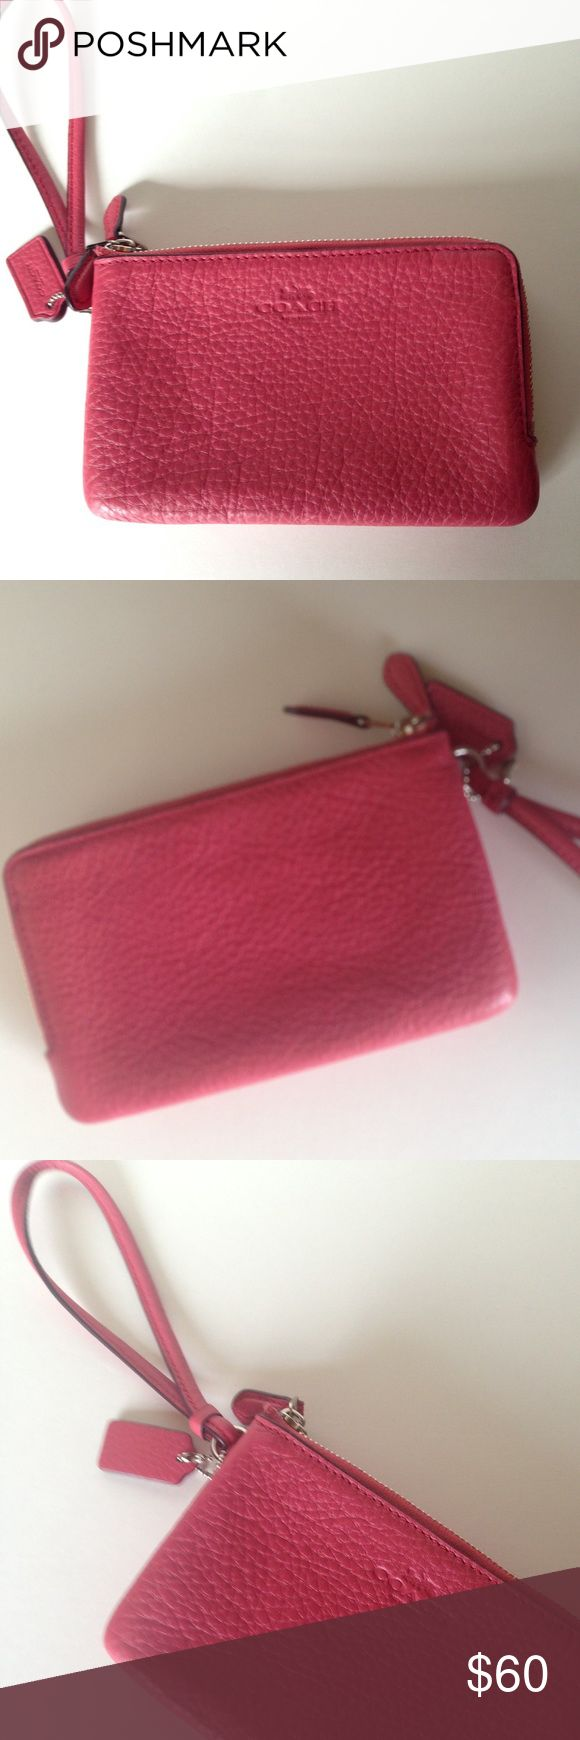 NWT Coach Pebbled Leather Zip Wristlet New with tag Coach pebbled leather double corner zip wristlet/strawberry/pink with silver hardware. Interior has two compartments for credit cards. F66605 No Trades Coach Bags Clutches & Wristlets